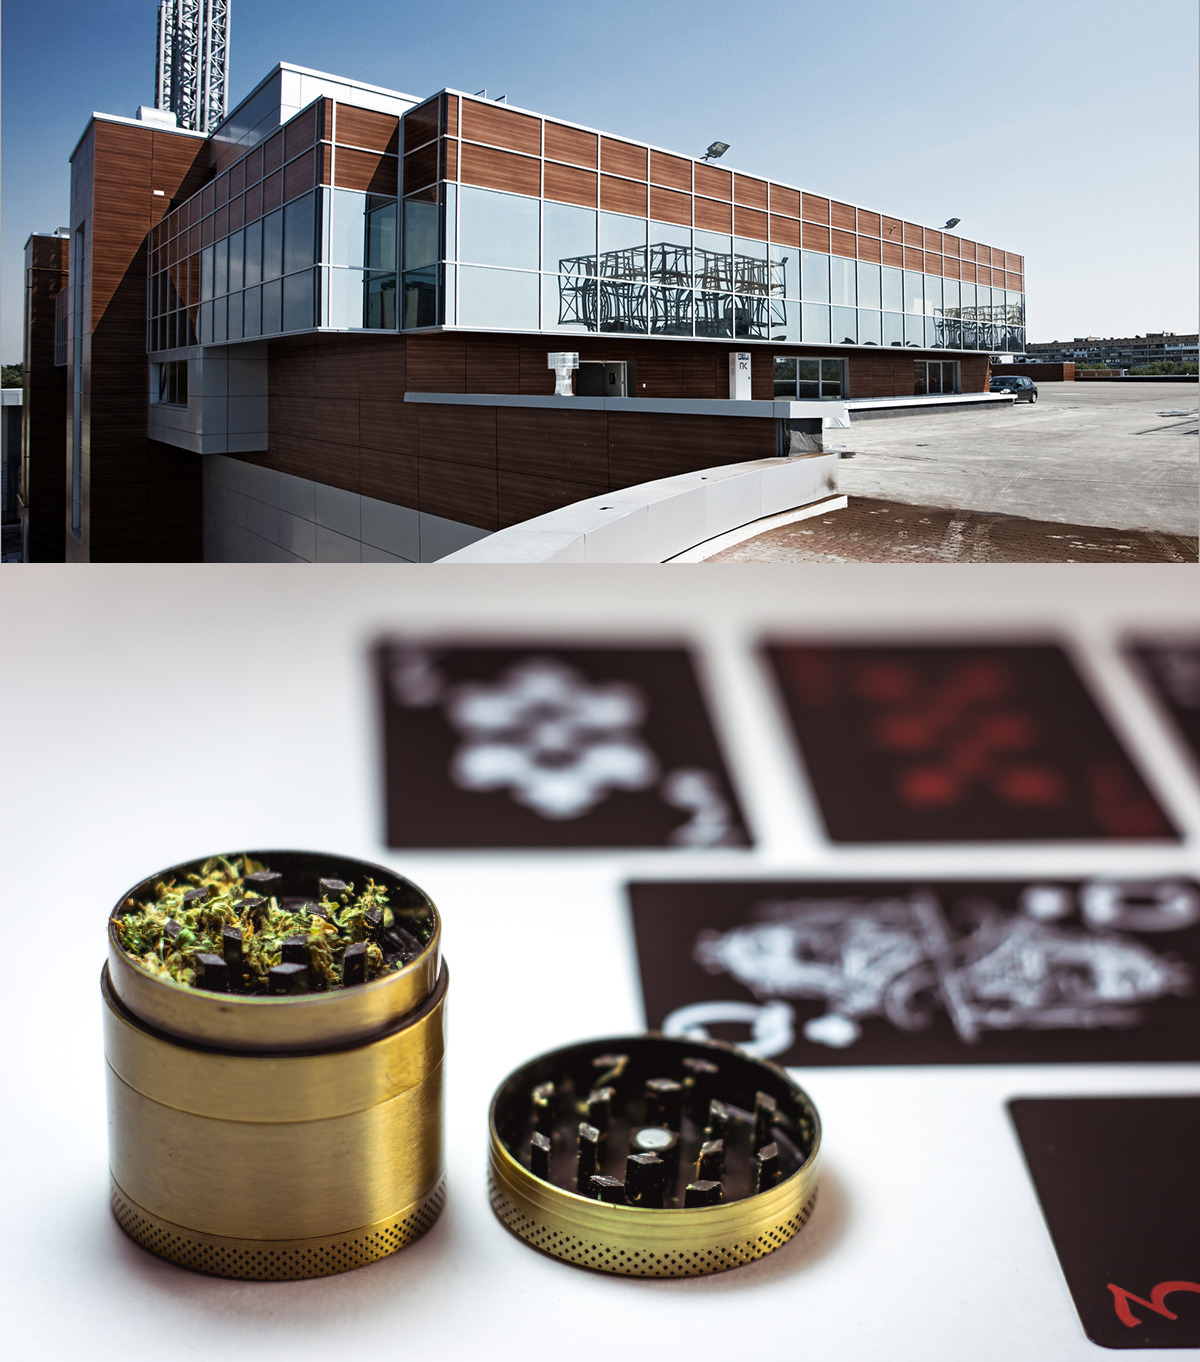 (Top) Cannabis real estate building. (Bottom) Grinder with marijuana.